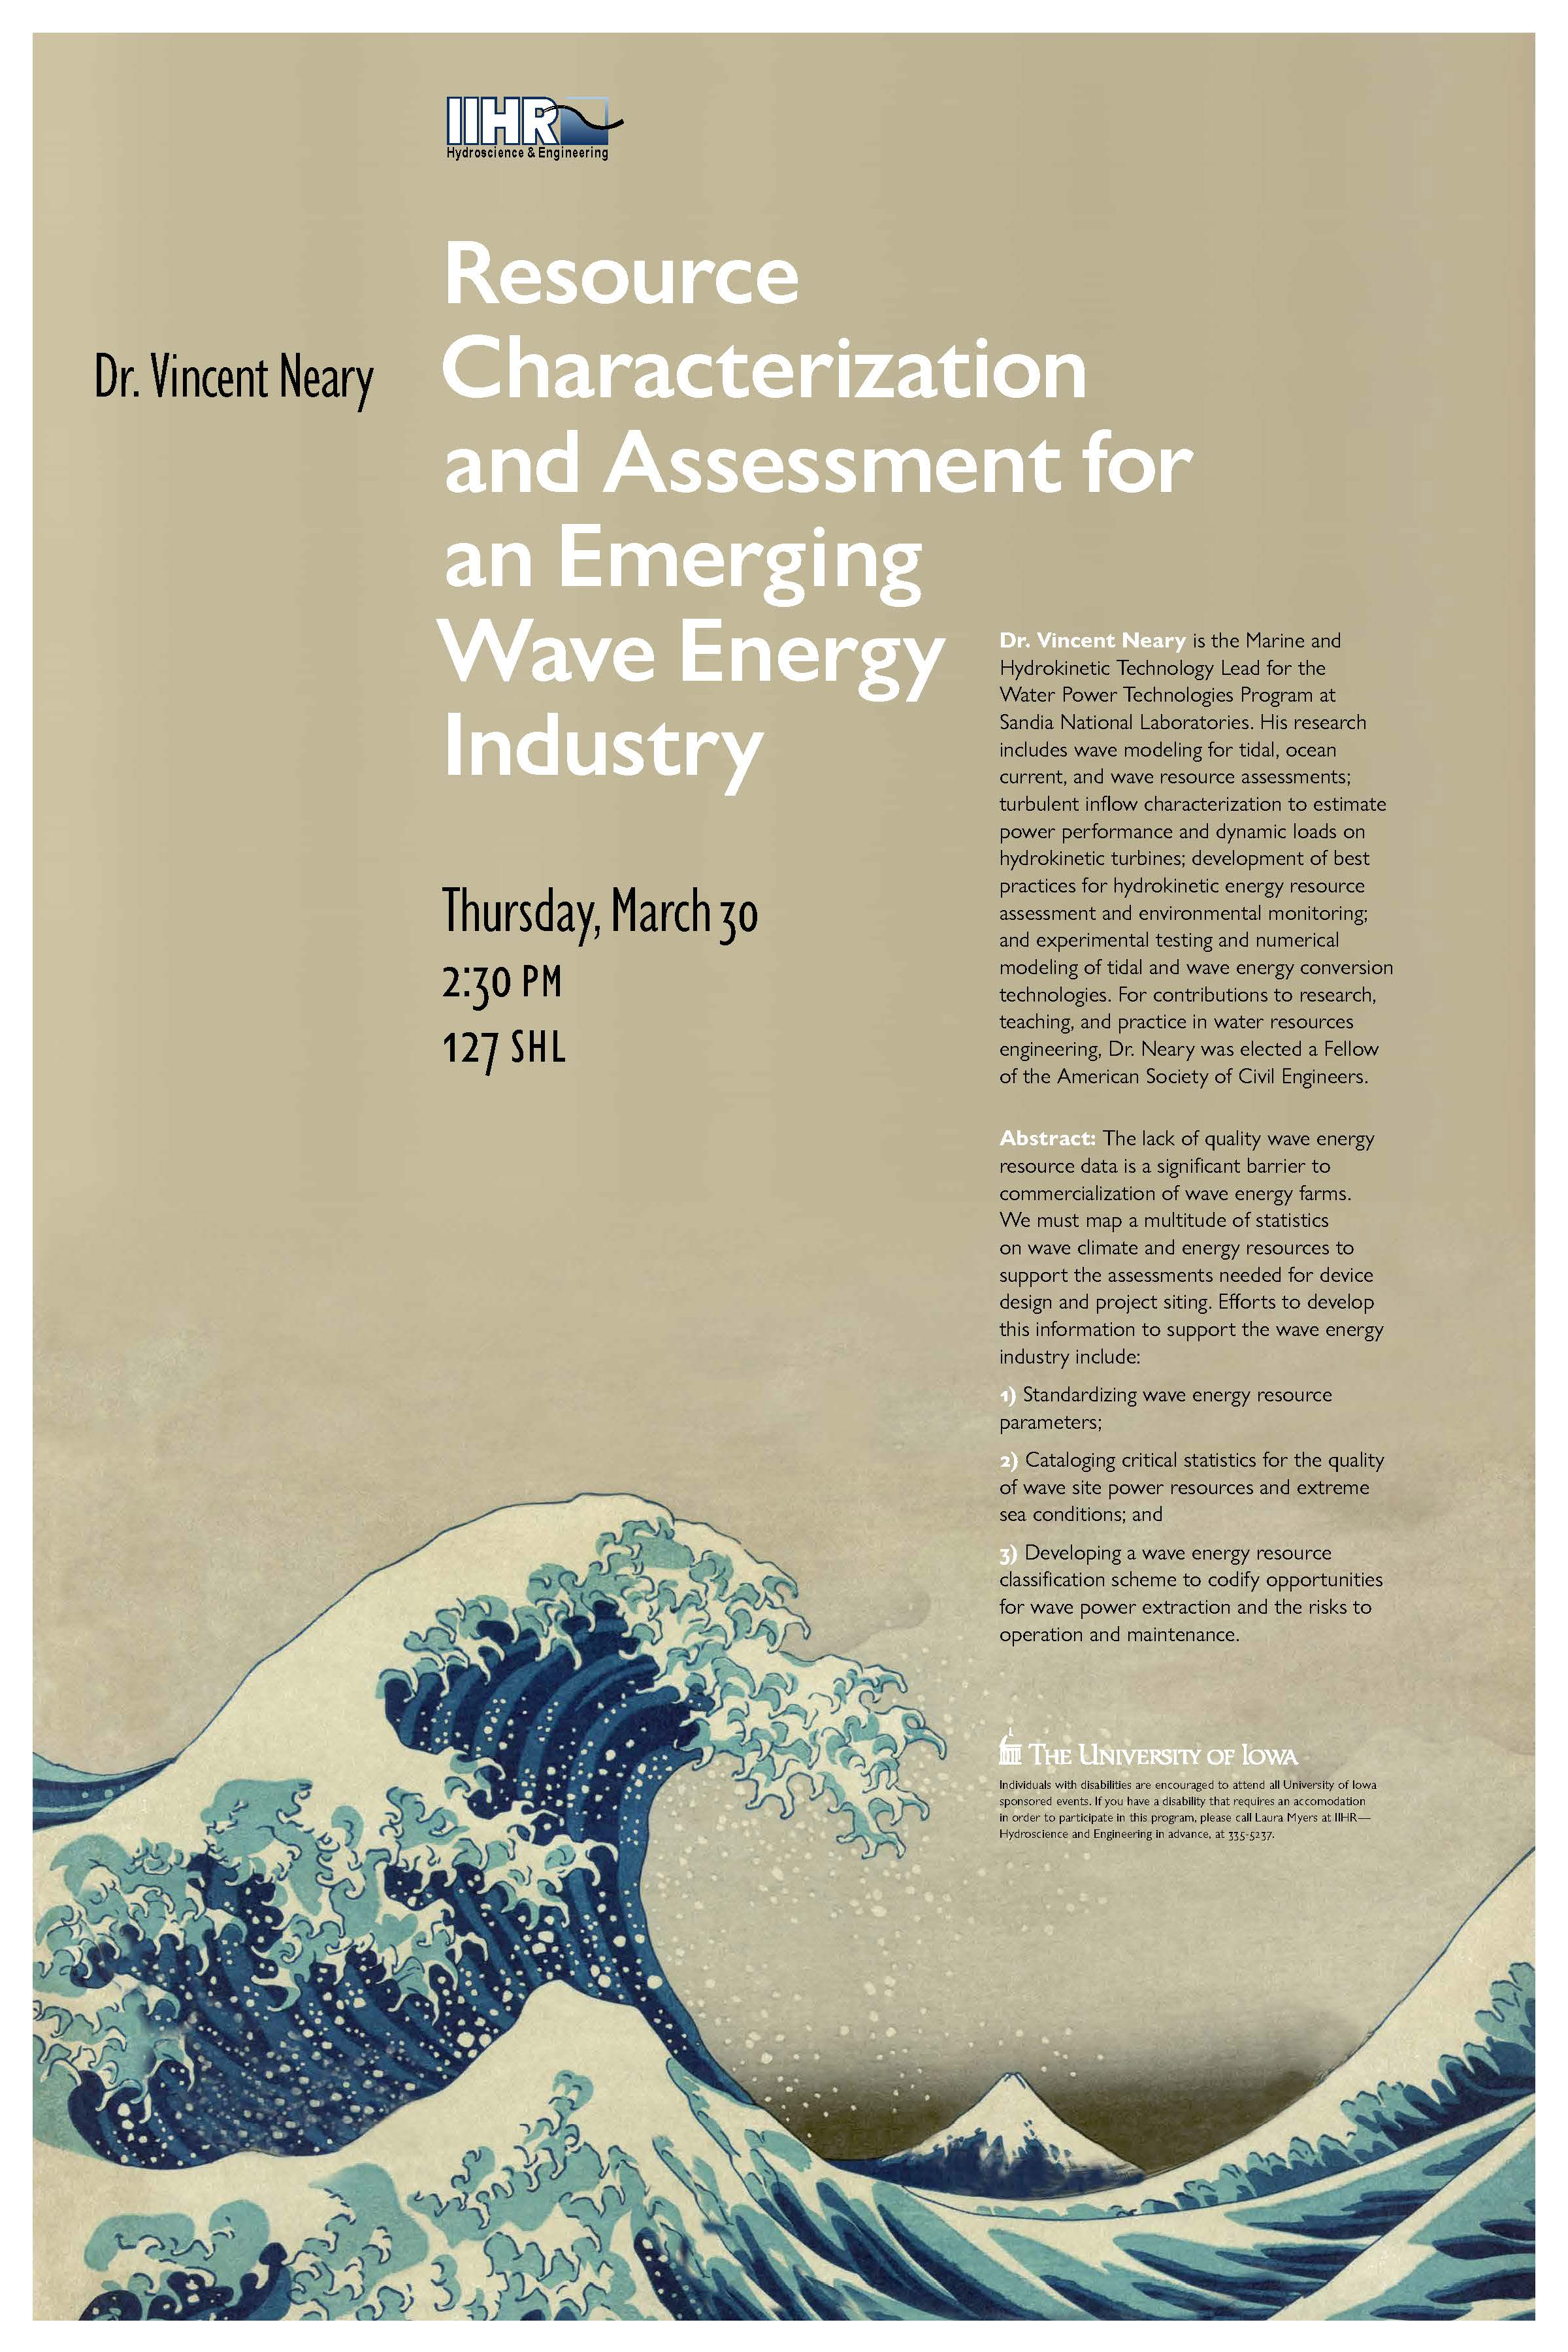 Poster for Dr. Vincent Neary's seminar.